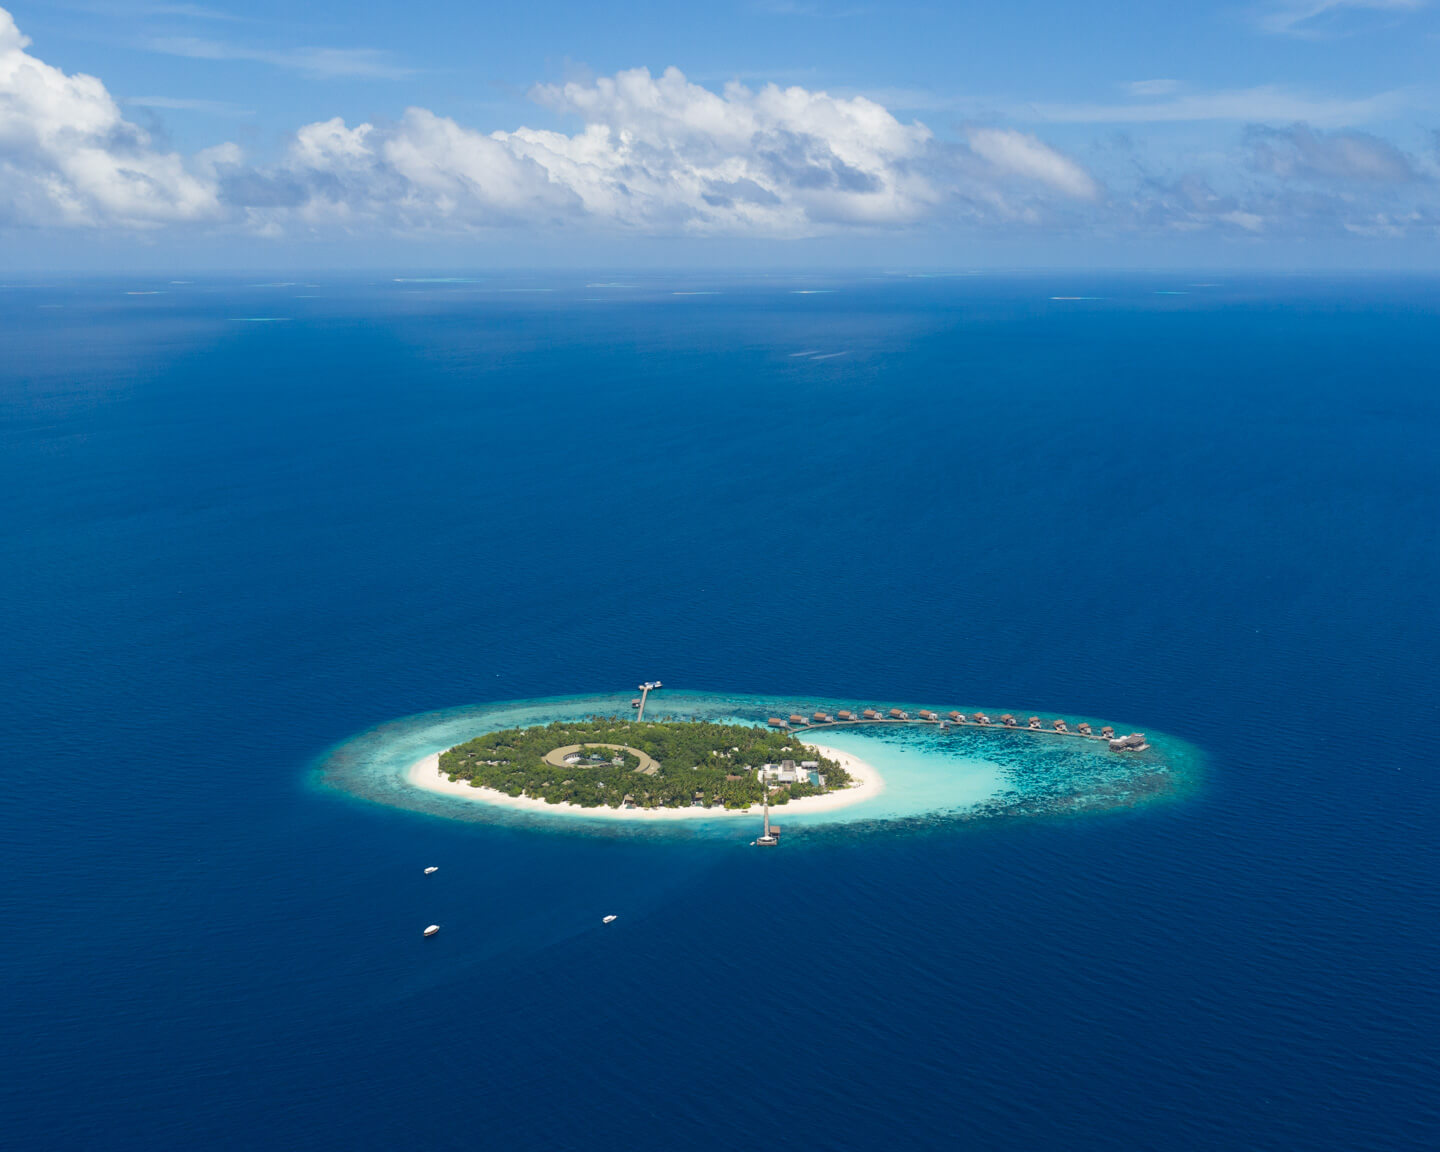 drone shot of the whole island Park Hyatt Maldives Hadahaa surrounded by blue water